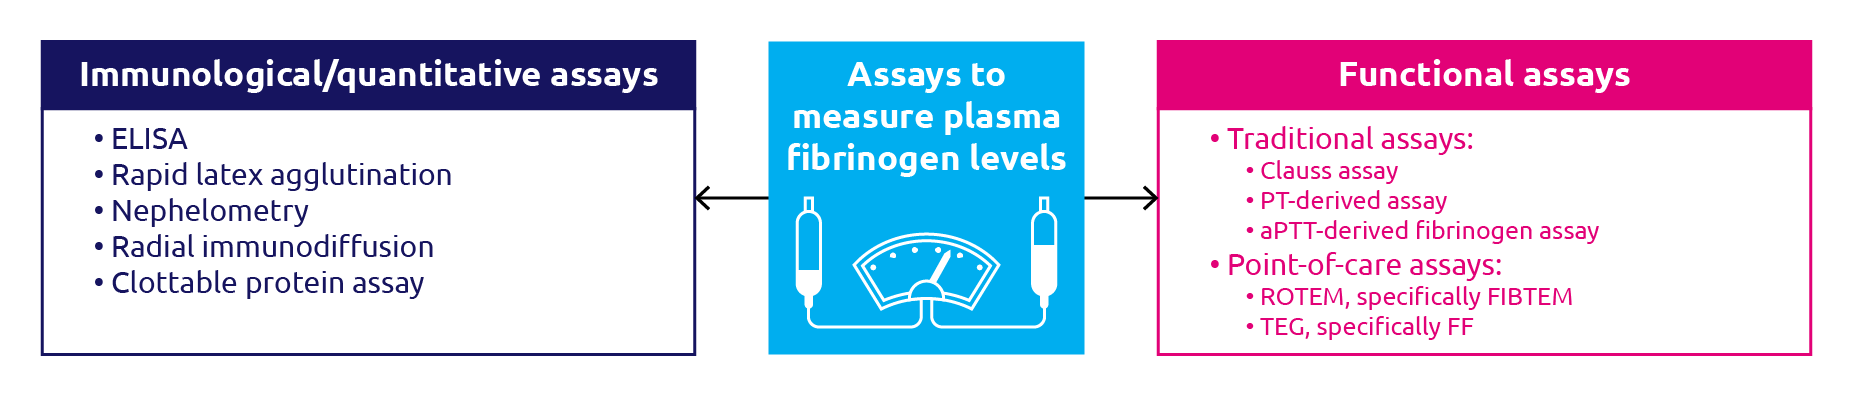 Quantitative and functional assays for measuring fibrinogen levels and activity